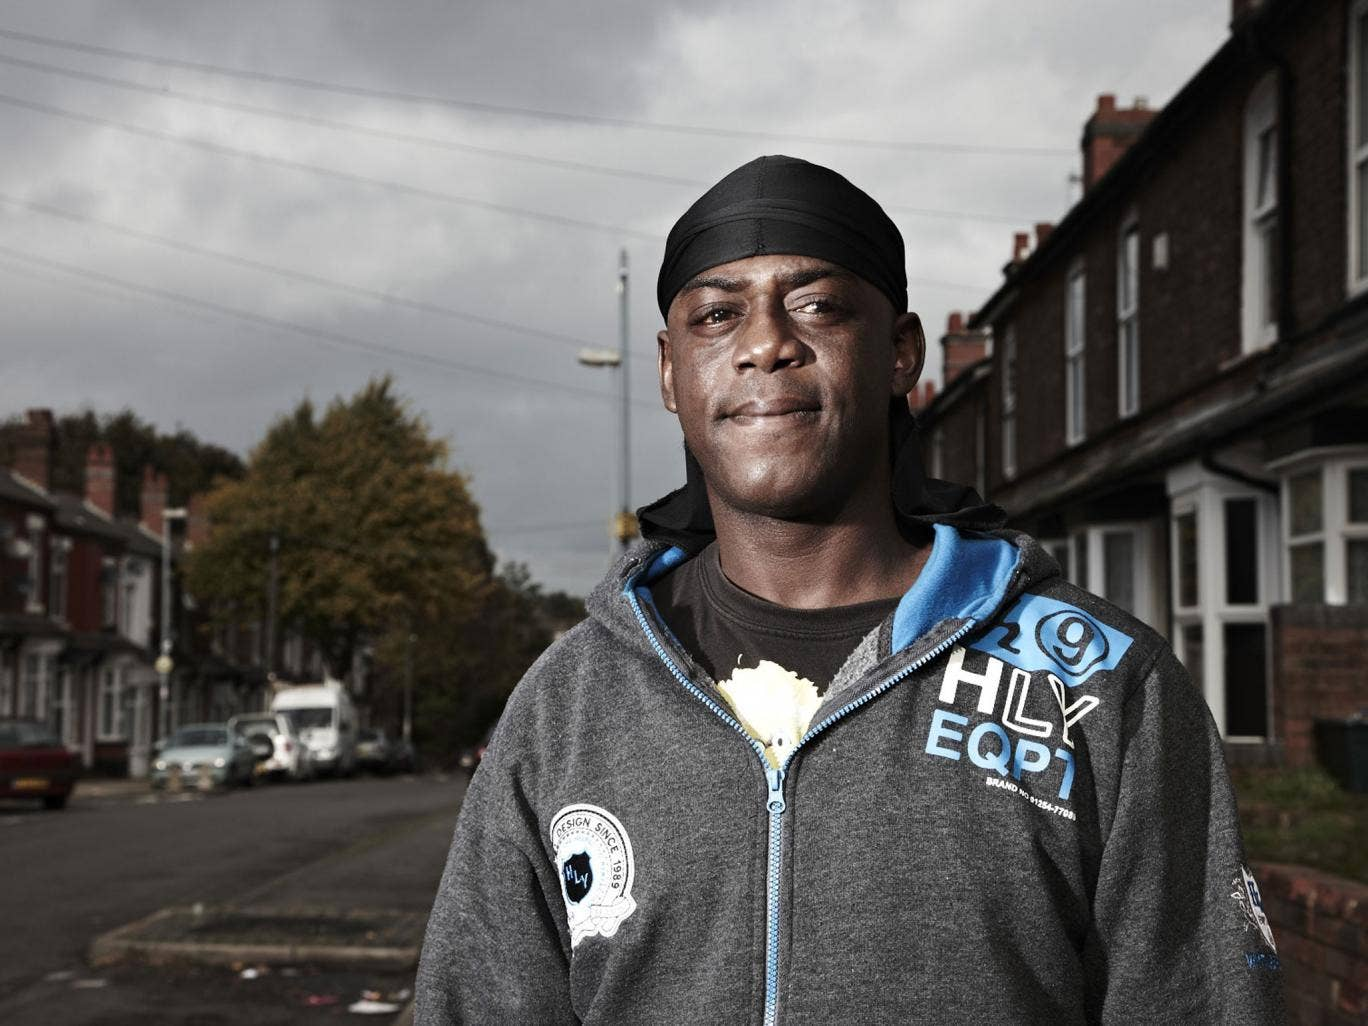 New BBC series Britain's Hardest Grafter seems to be tapping into the 'poverty porn' trend started by C4's Benefits Street